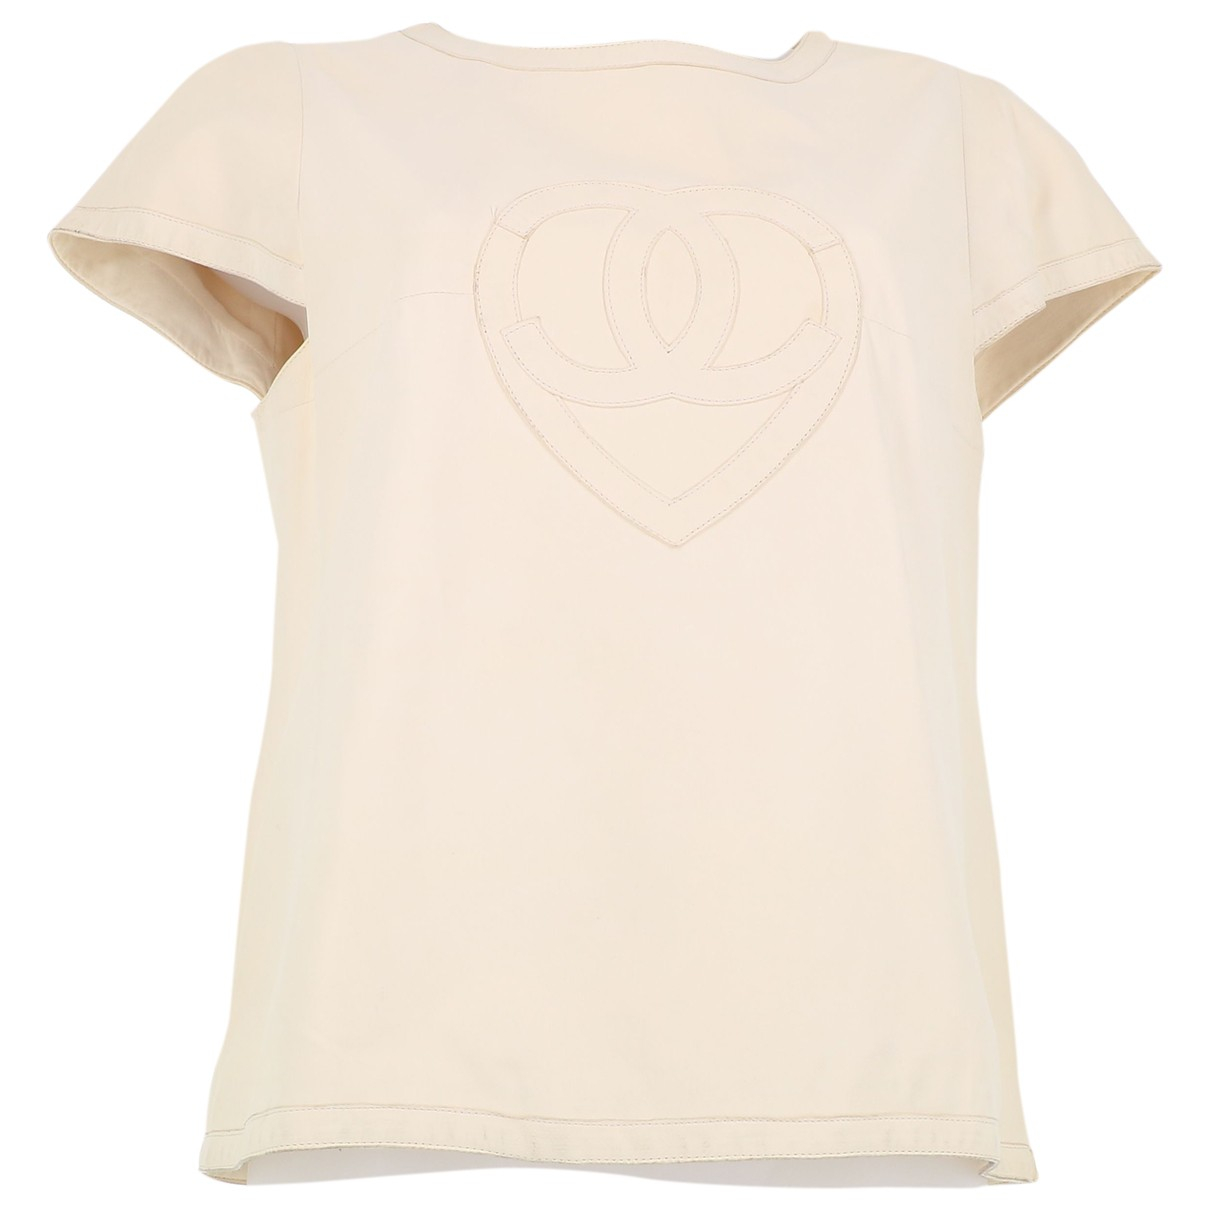 Chanel \N Beige Leather  top for Women L